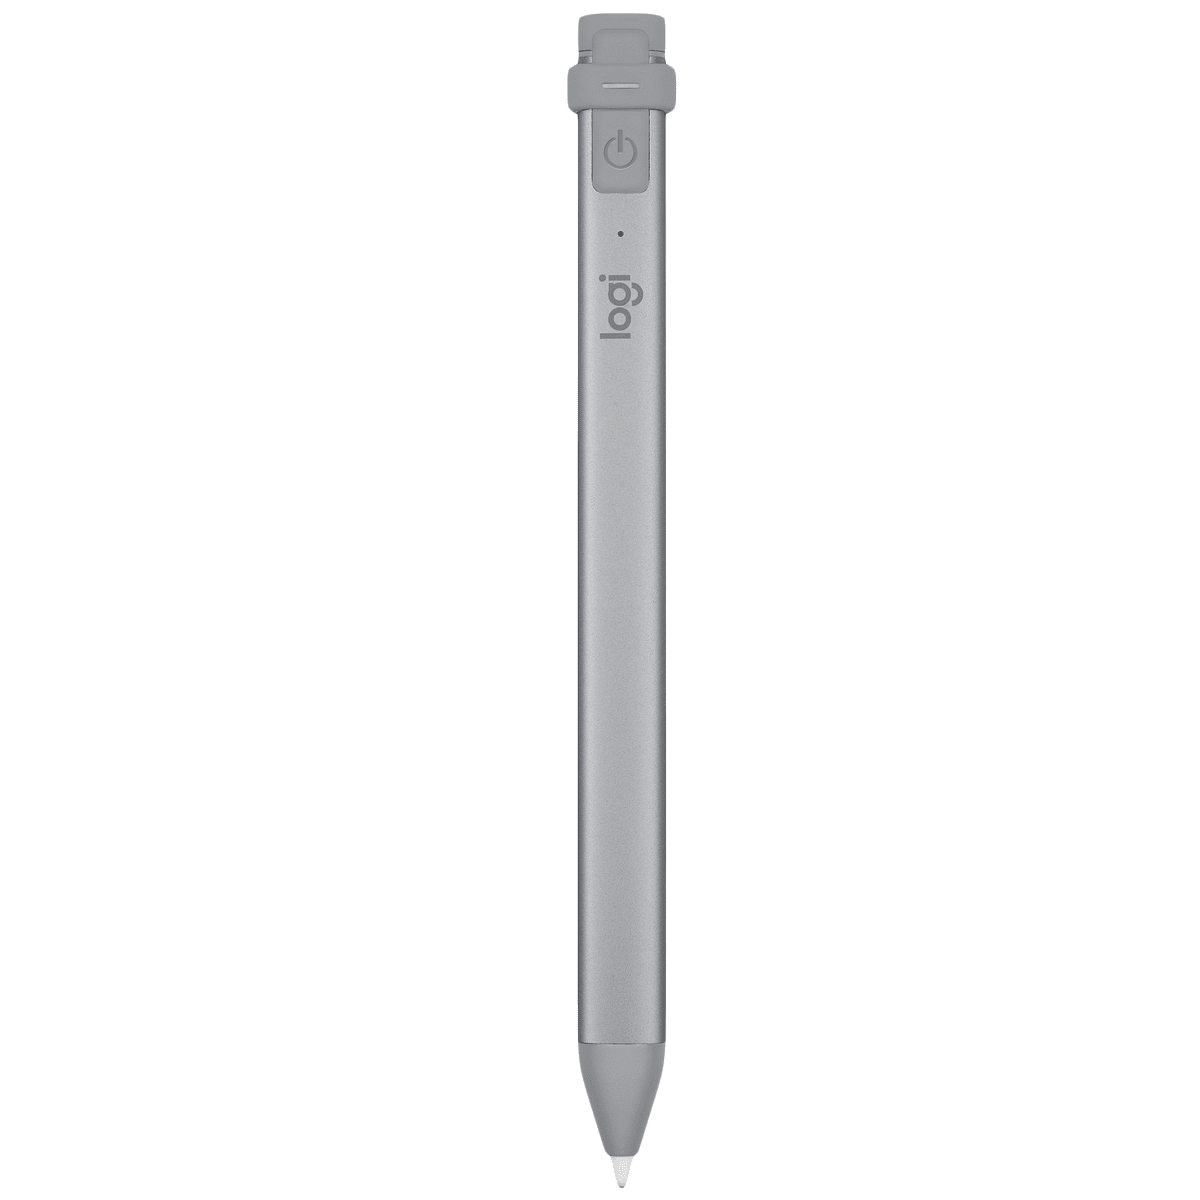 Logitech Crayon Pencil For iPad (Palm Rejection Technology, 914-000035, Grey)